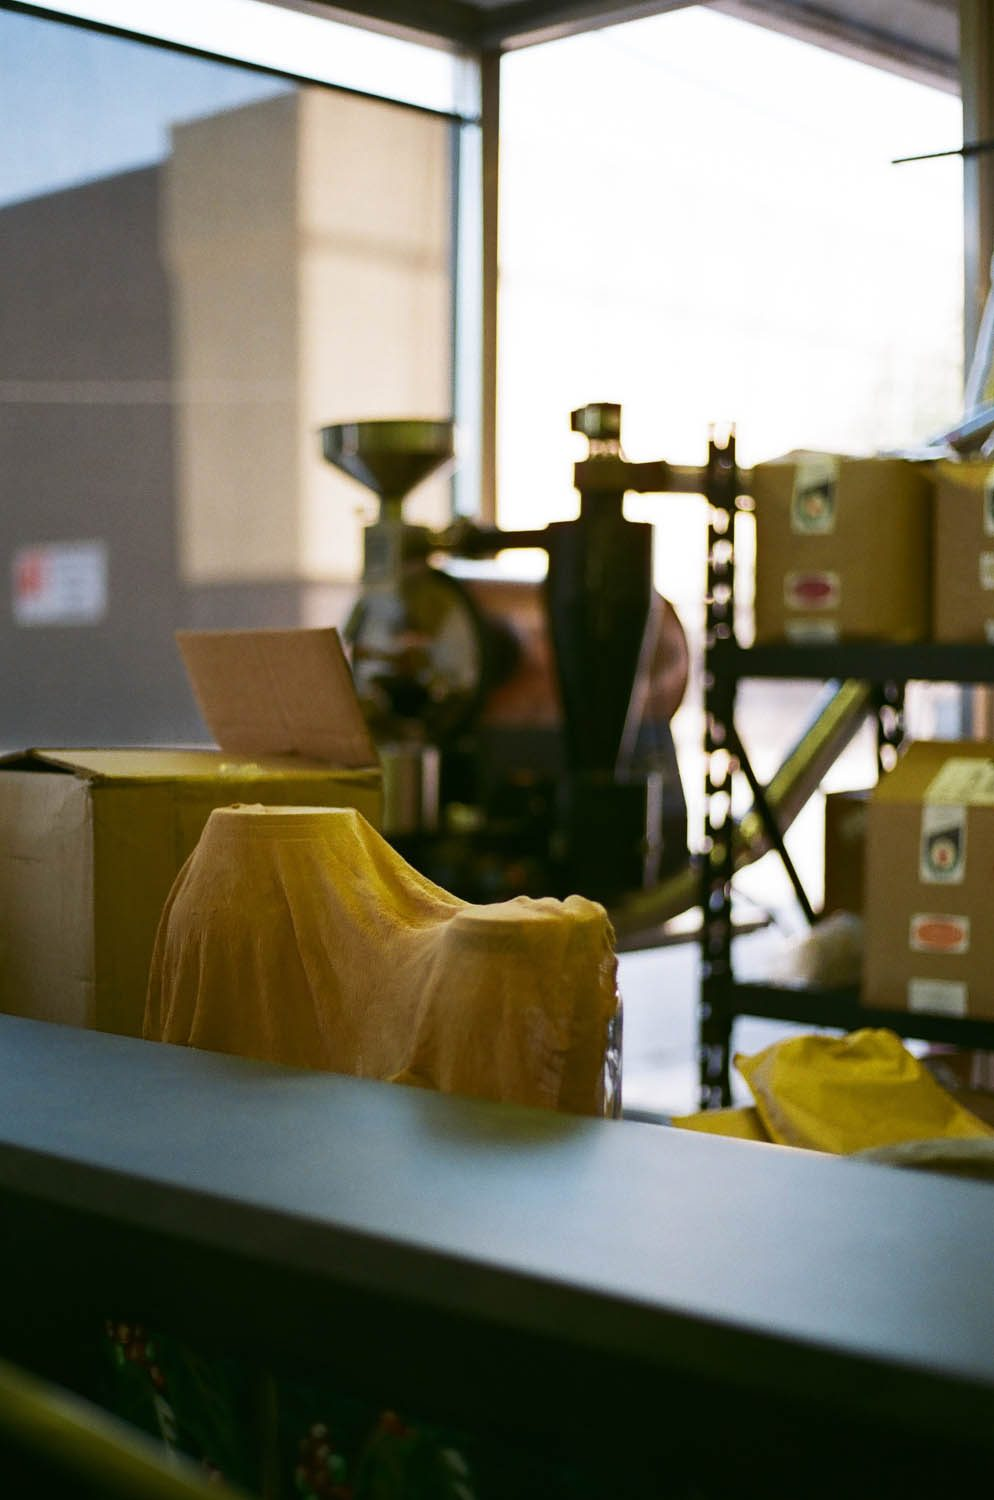 Some equipment at a local coffee shop in Wichita Falls, Texas. Shot at 200, developed at 320.